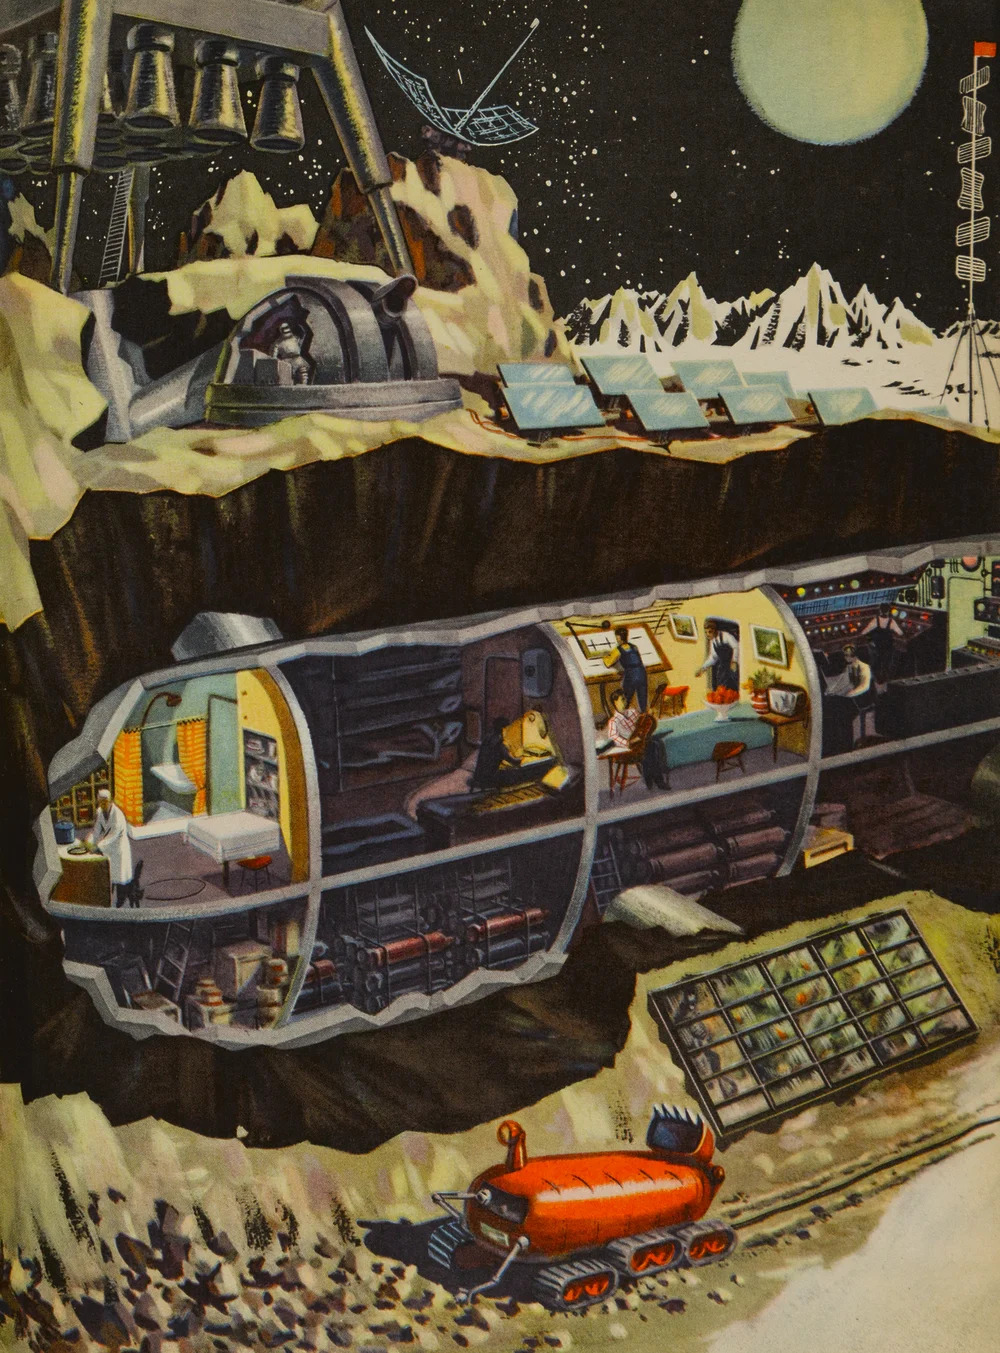 An illustration showing an imaginary scene from a space station on the Moon